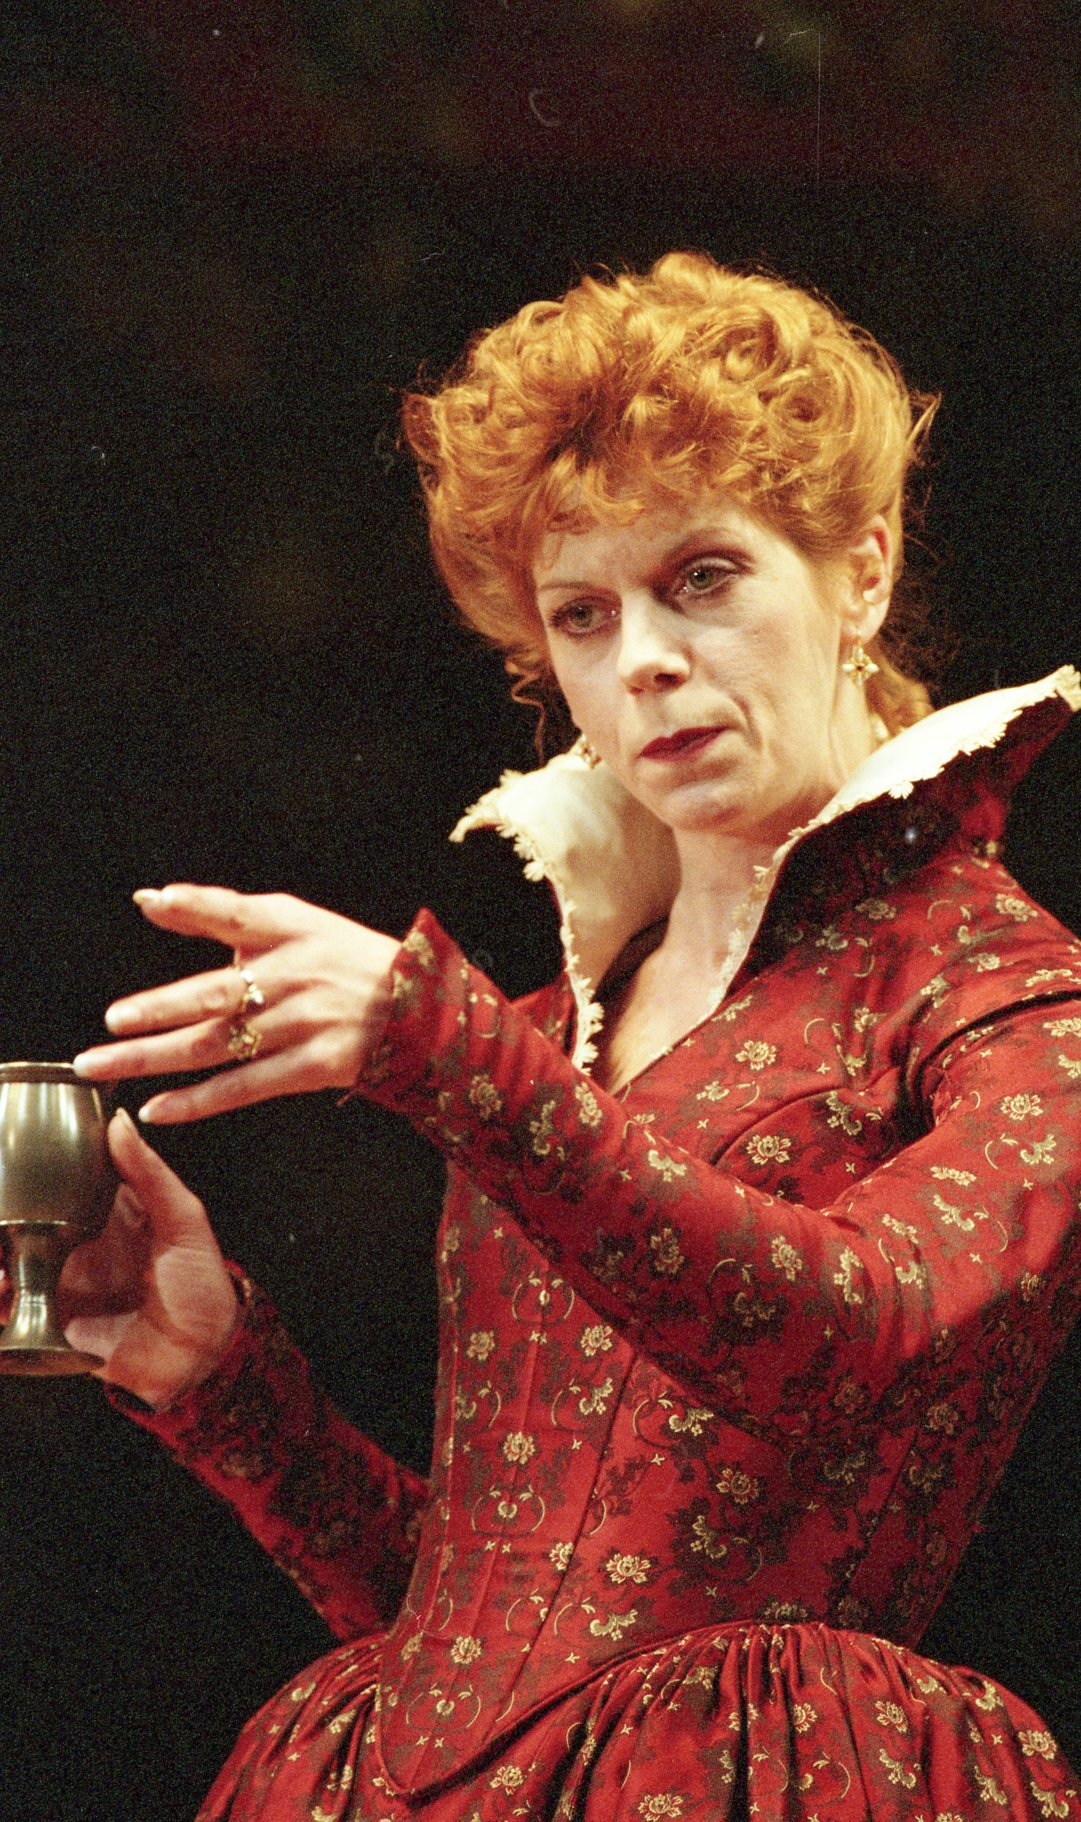 Siobhán Redmond as Beatrice in a red neck with a high collar.